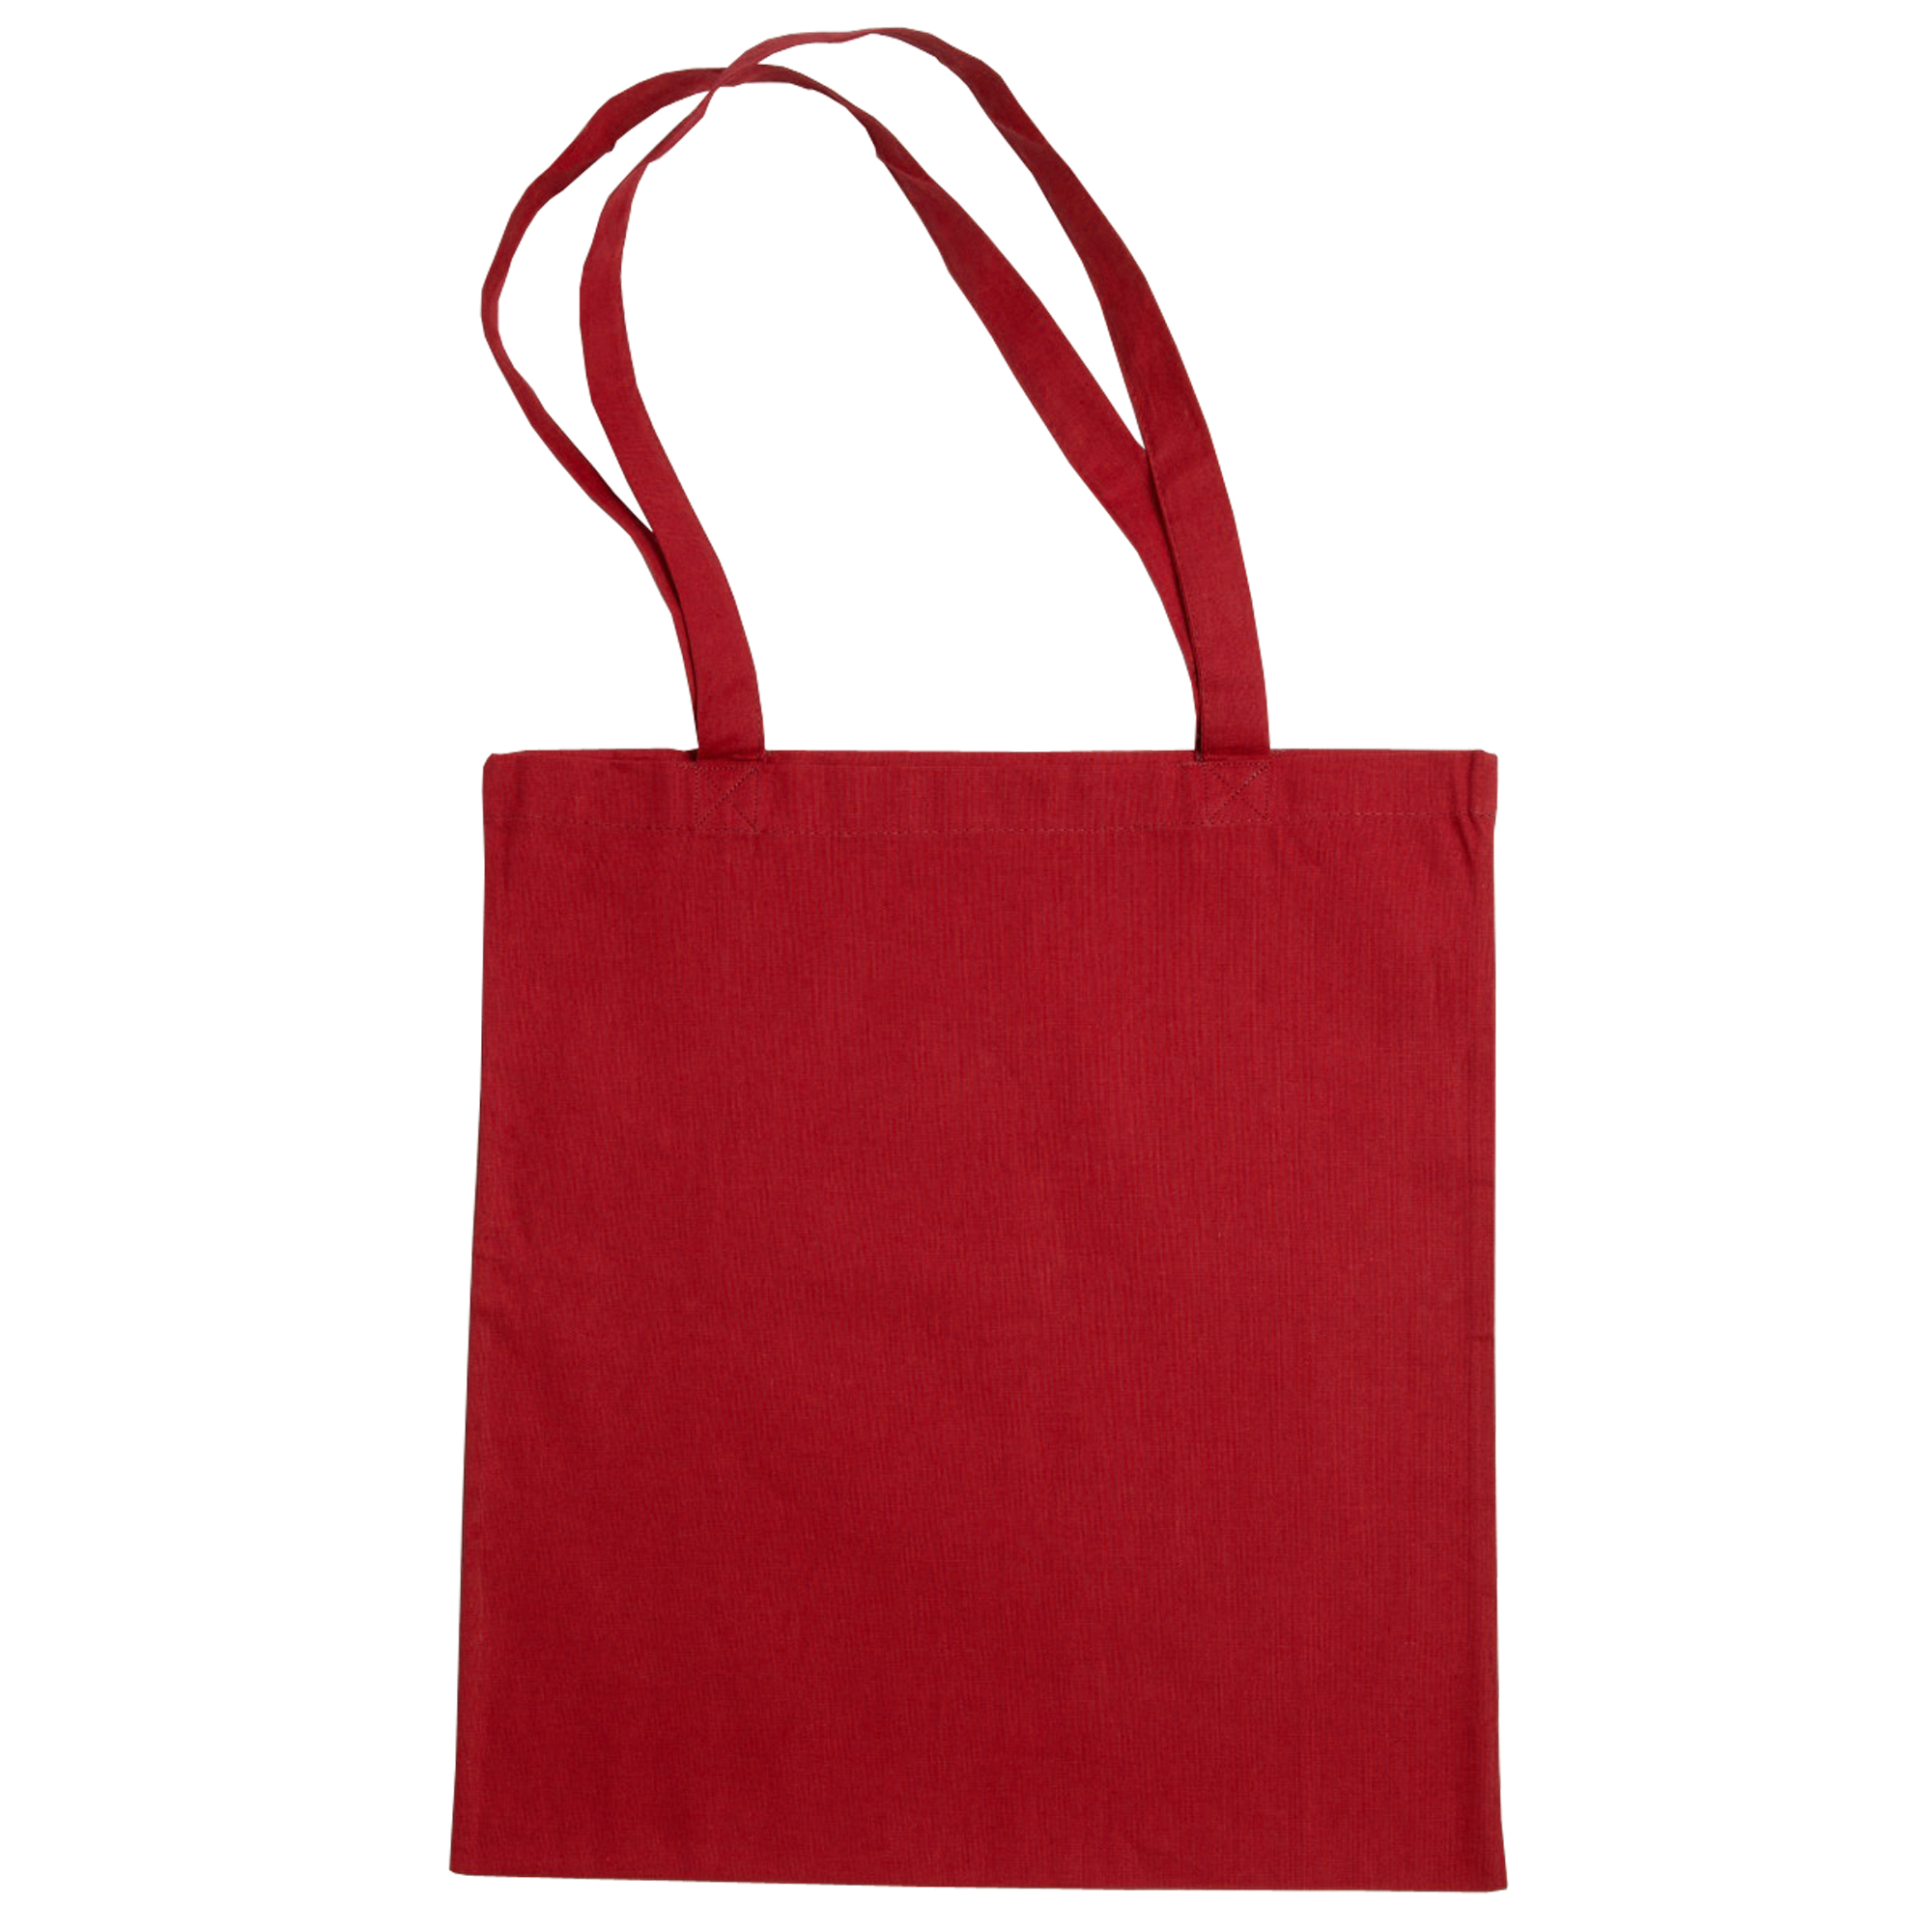 Jassz Bags Beech Cotton Large Handle Shopping Bag / Tote (One Size) (Red)